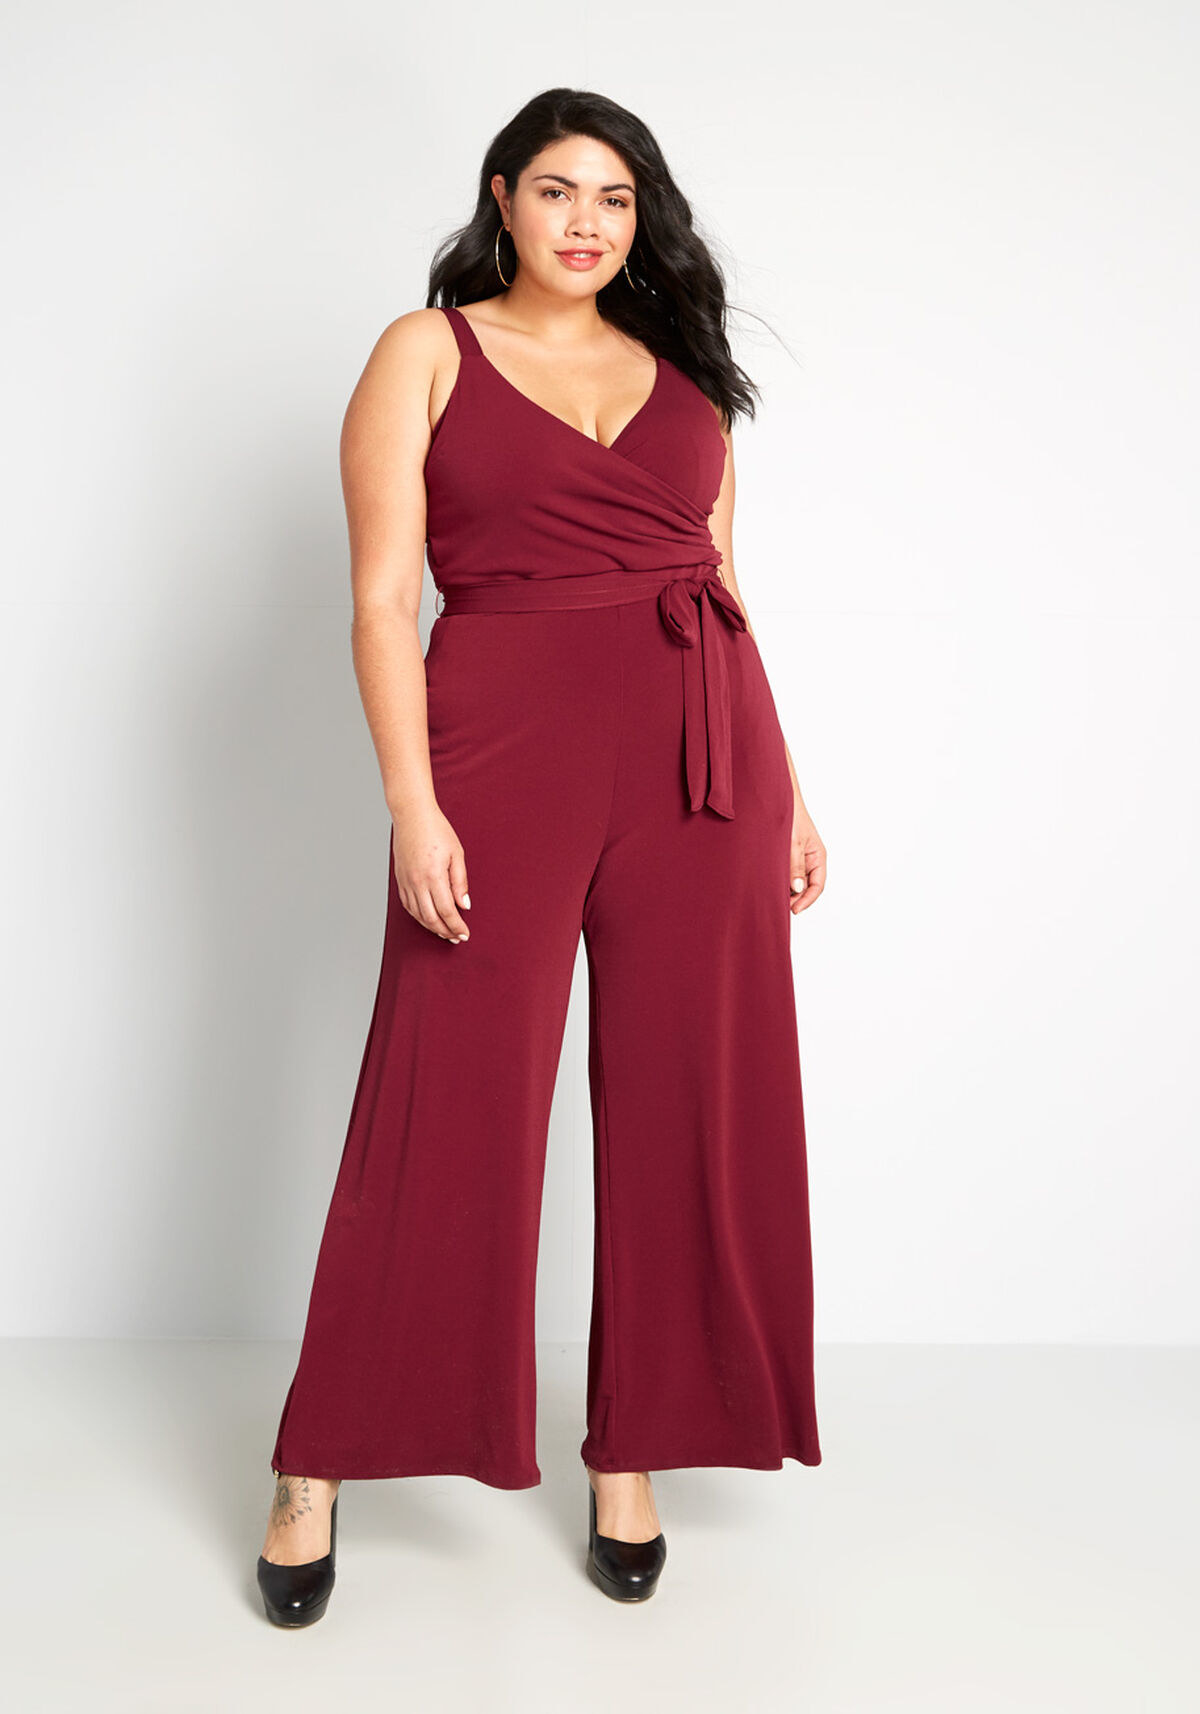 a model wearing the jumpsuit in burgundy